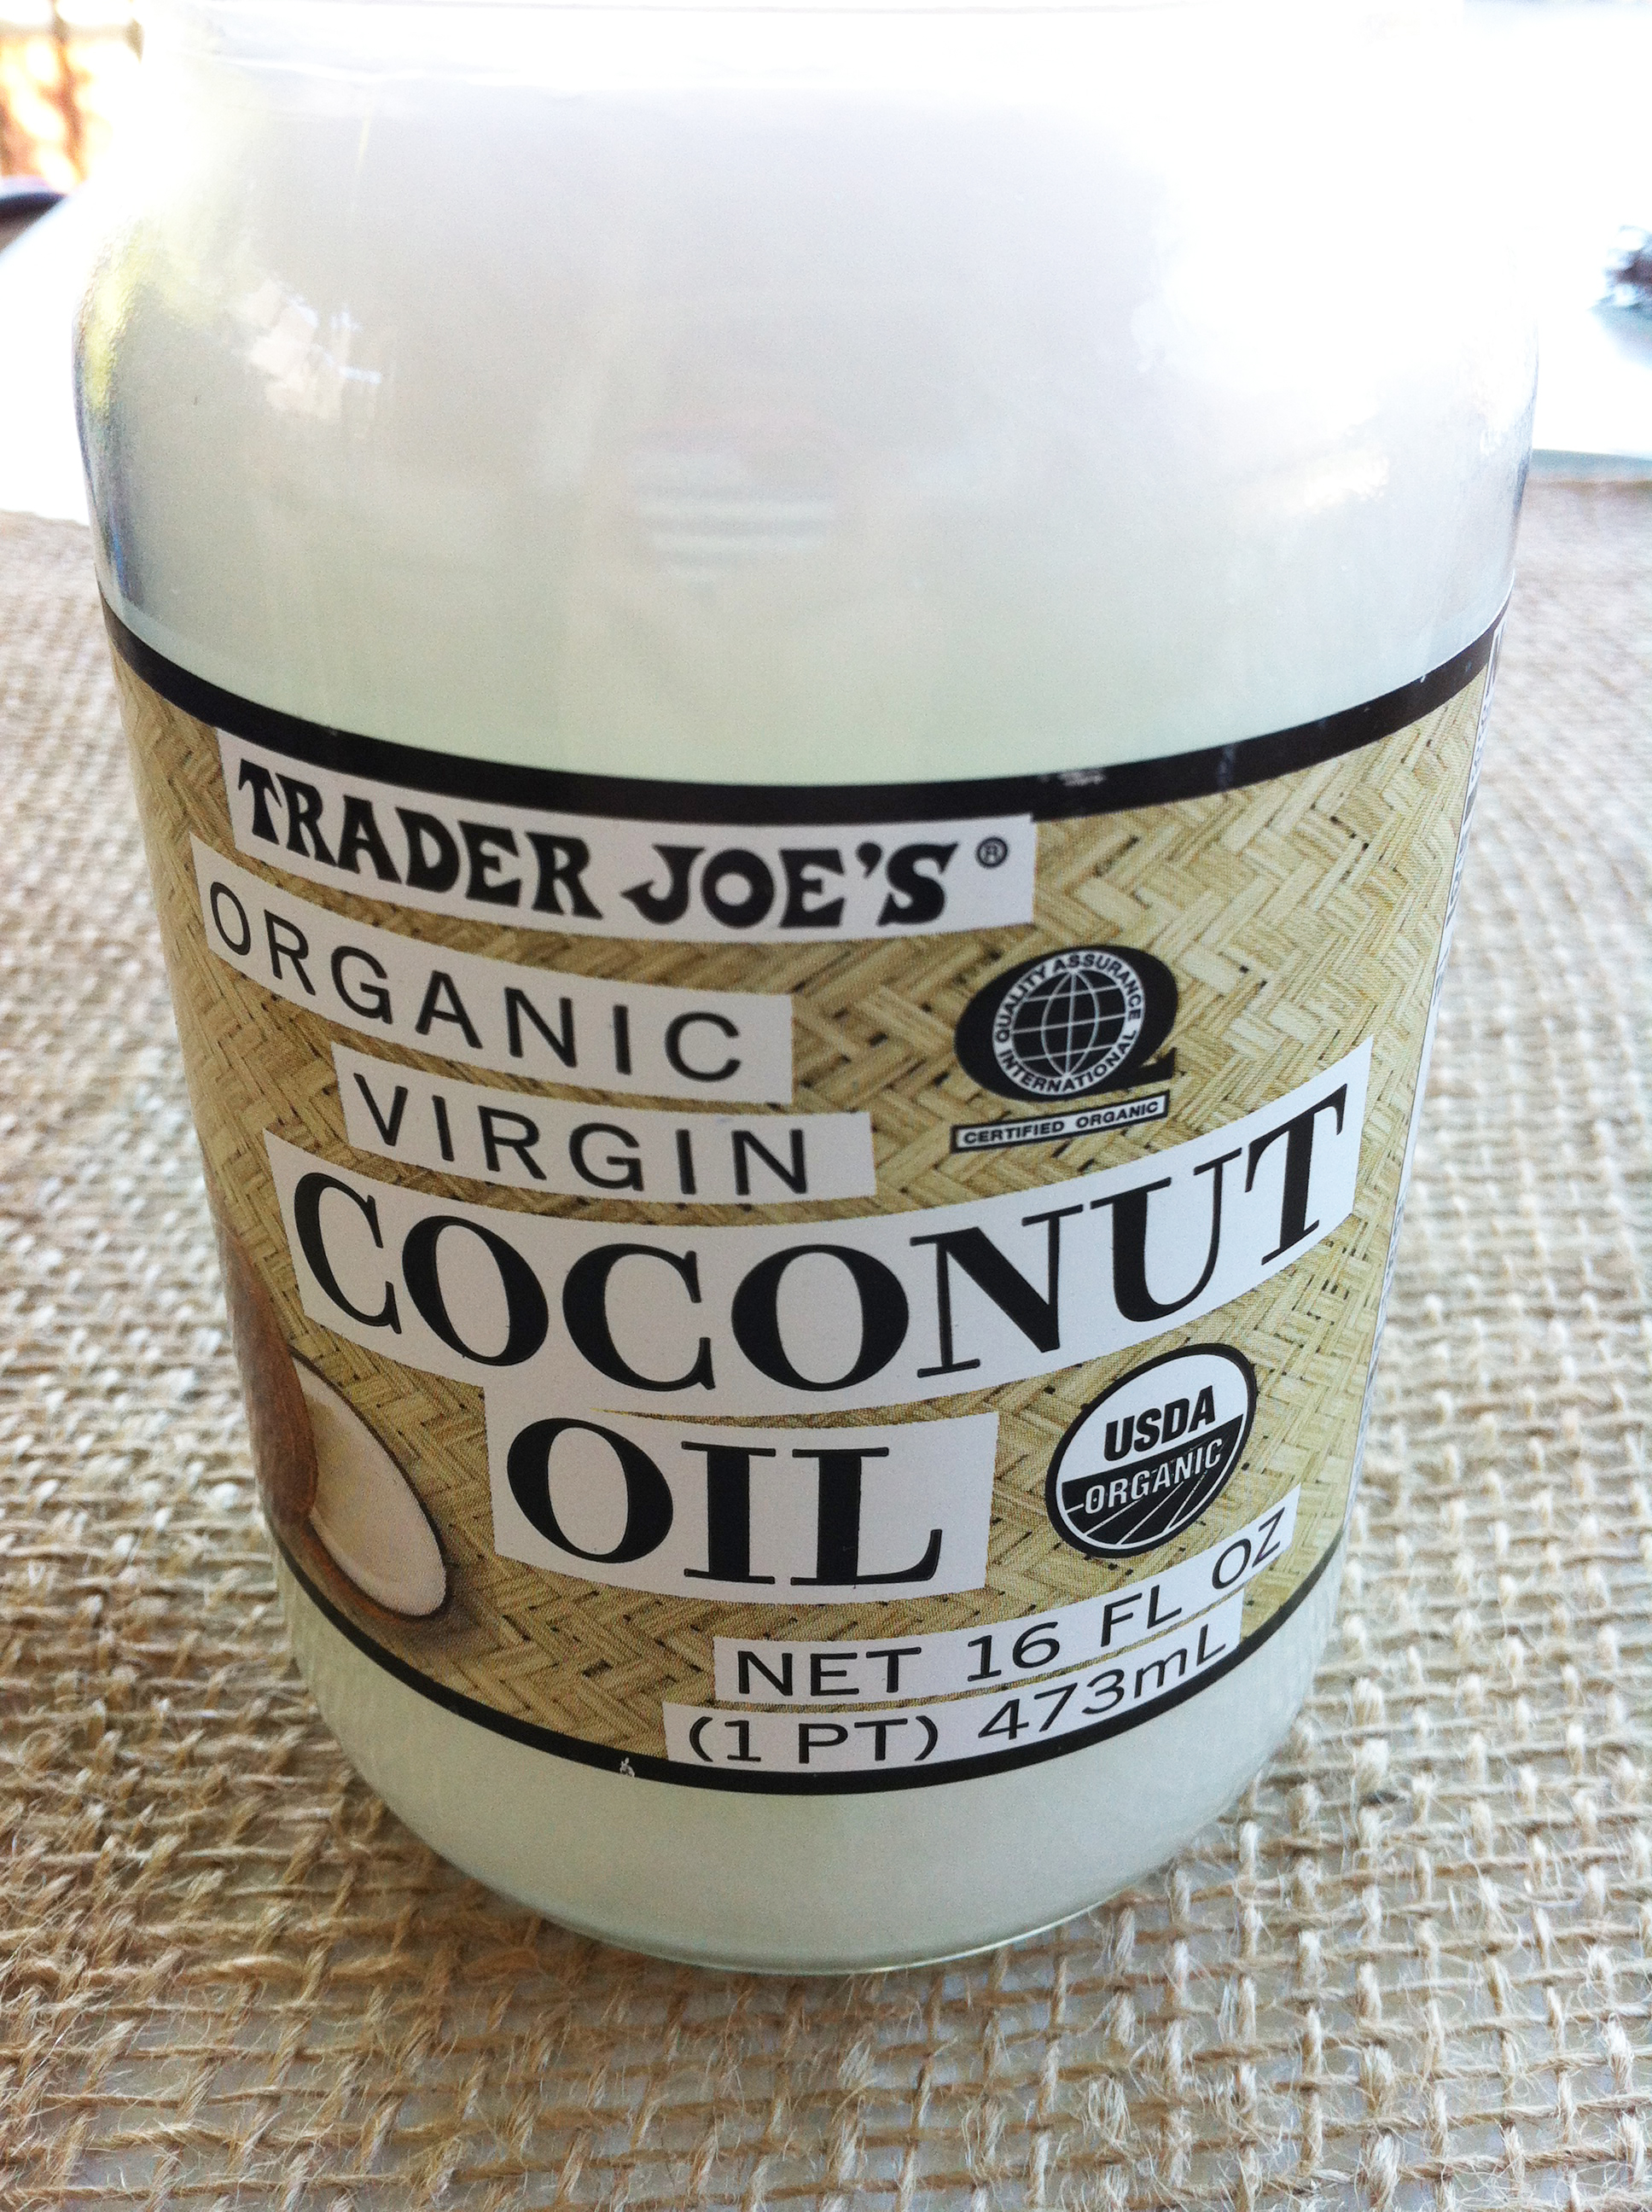 Lotion with coconut oil